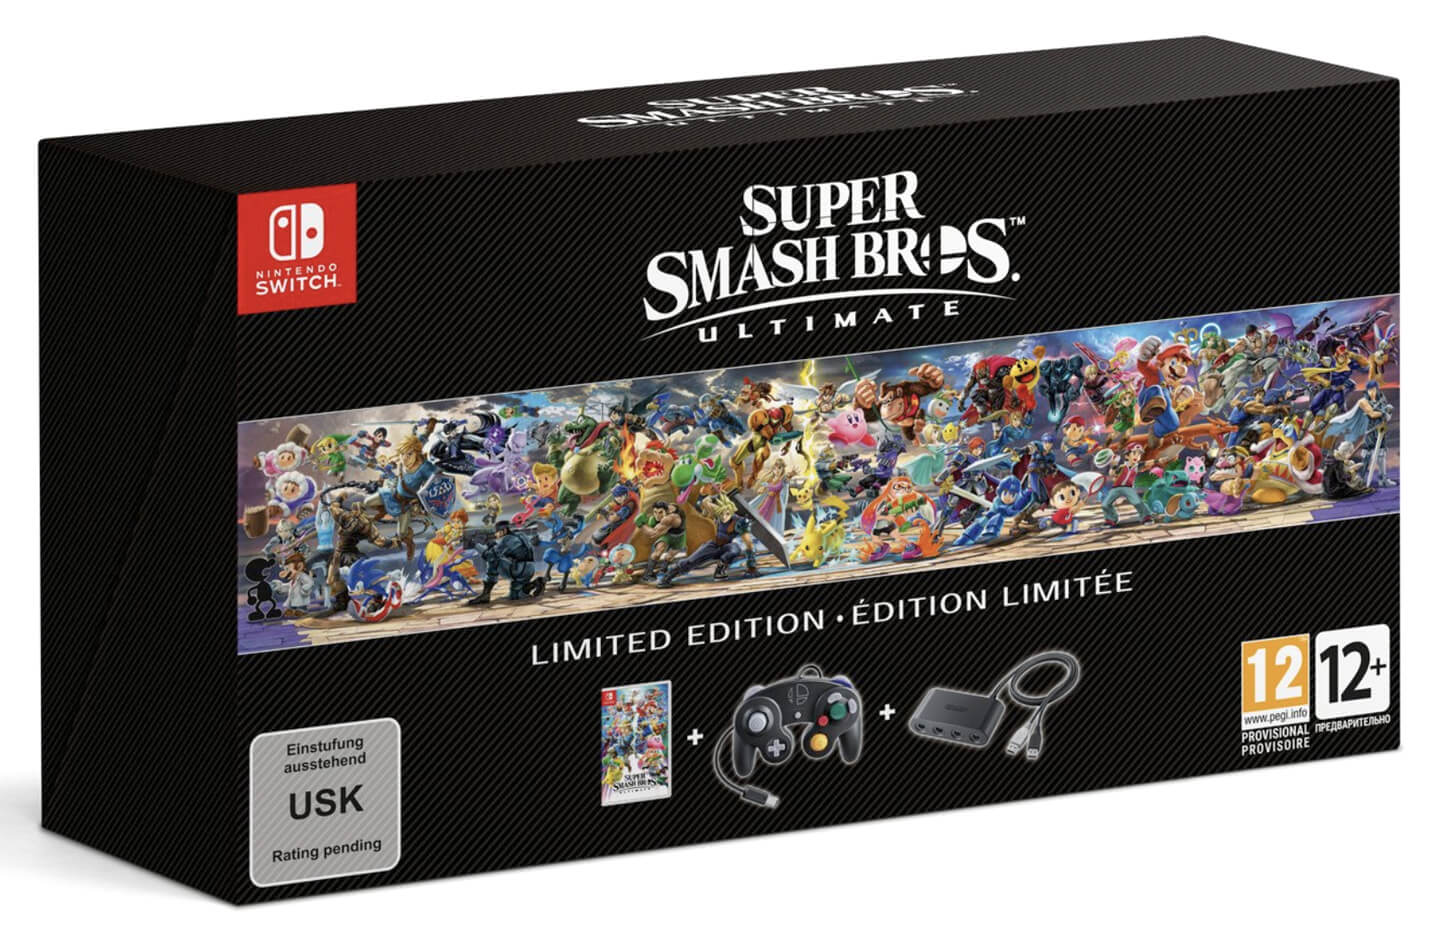 Super Smash Bros Ultimate Limited Edition